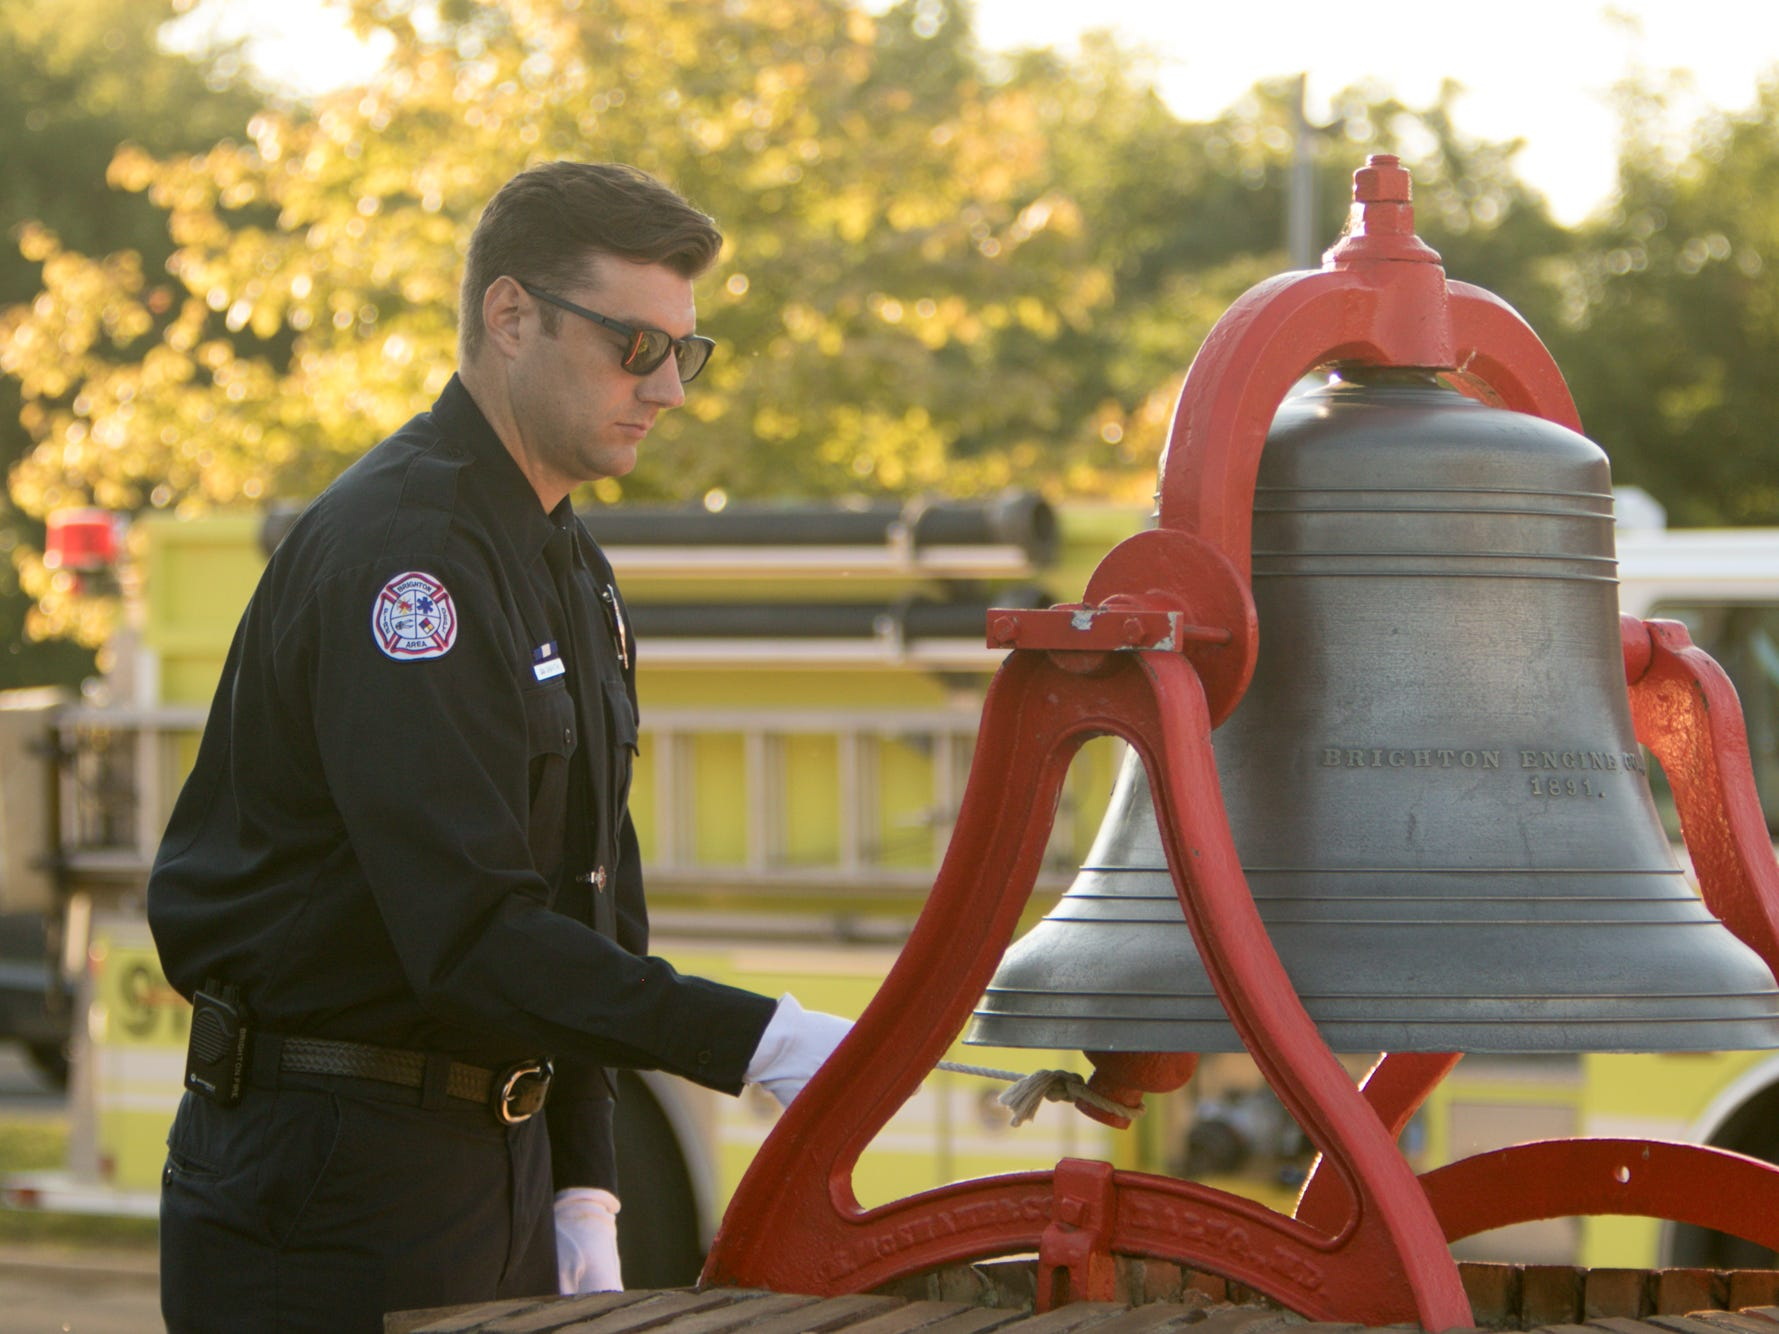 Brighton Area Fire Authority firefighter Ian Griffith rings a bell during the 9/11 memorial ceremony held at Station 31 Tuesday, Sept. 11, 2018.